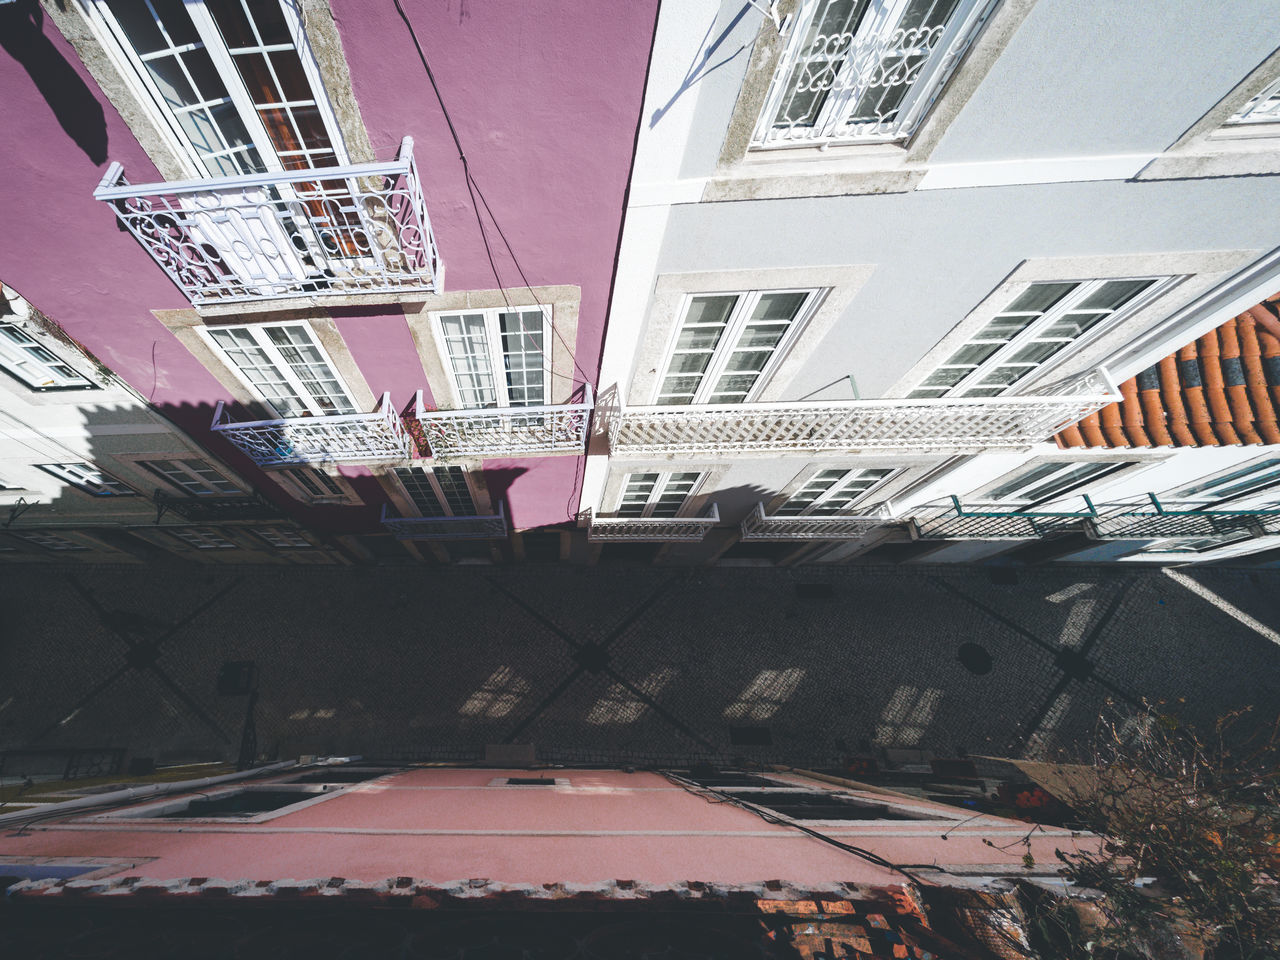 Architecture Balcon Balcony Balcony Shot Balcony View Balconyview Building Exterior Built Structure City Day Lisboa Lisbon Lissabon Narrow Narrow Street No People Old Buildings Old Town Outdoors Pink Building Street Street From Above